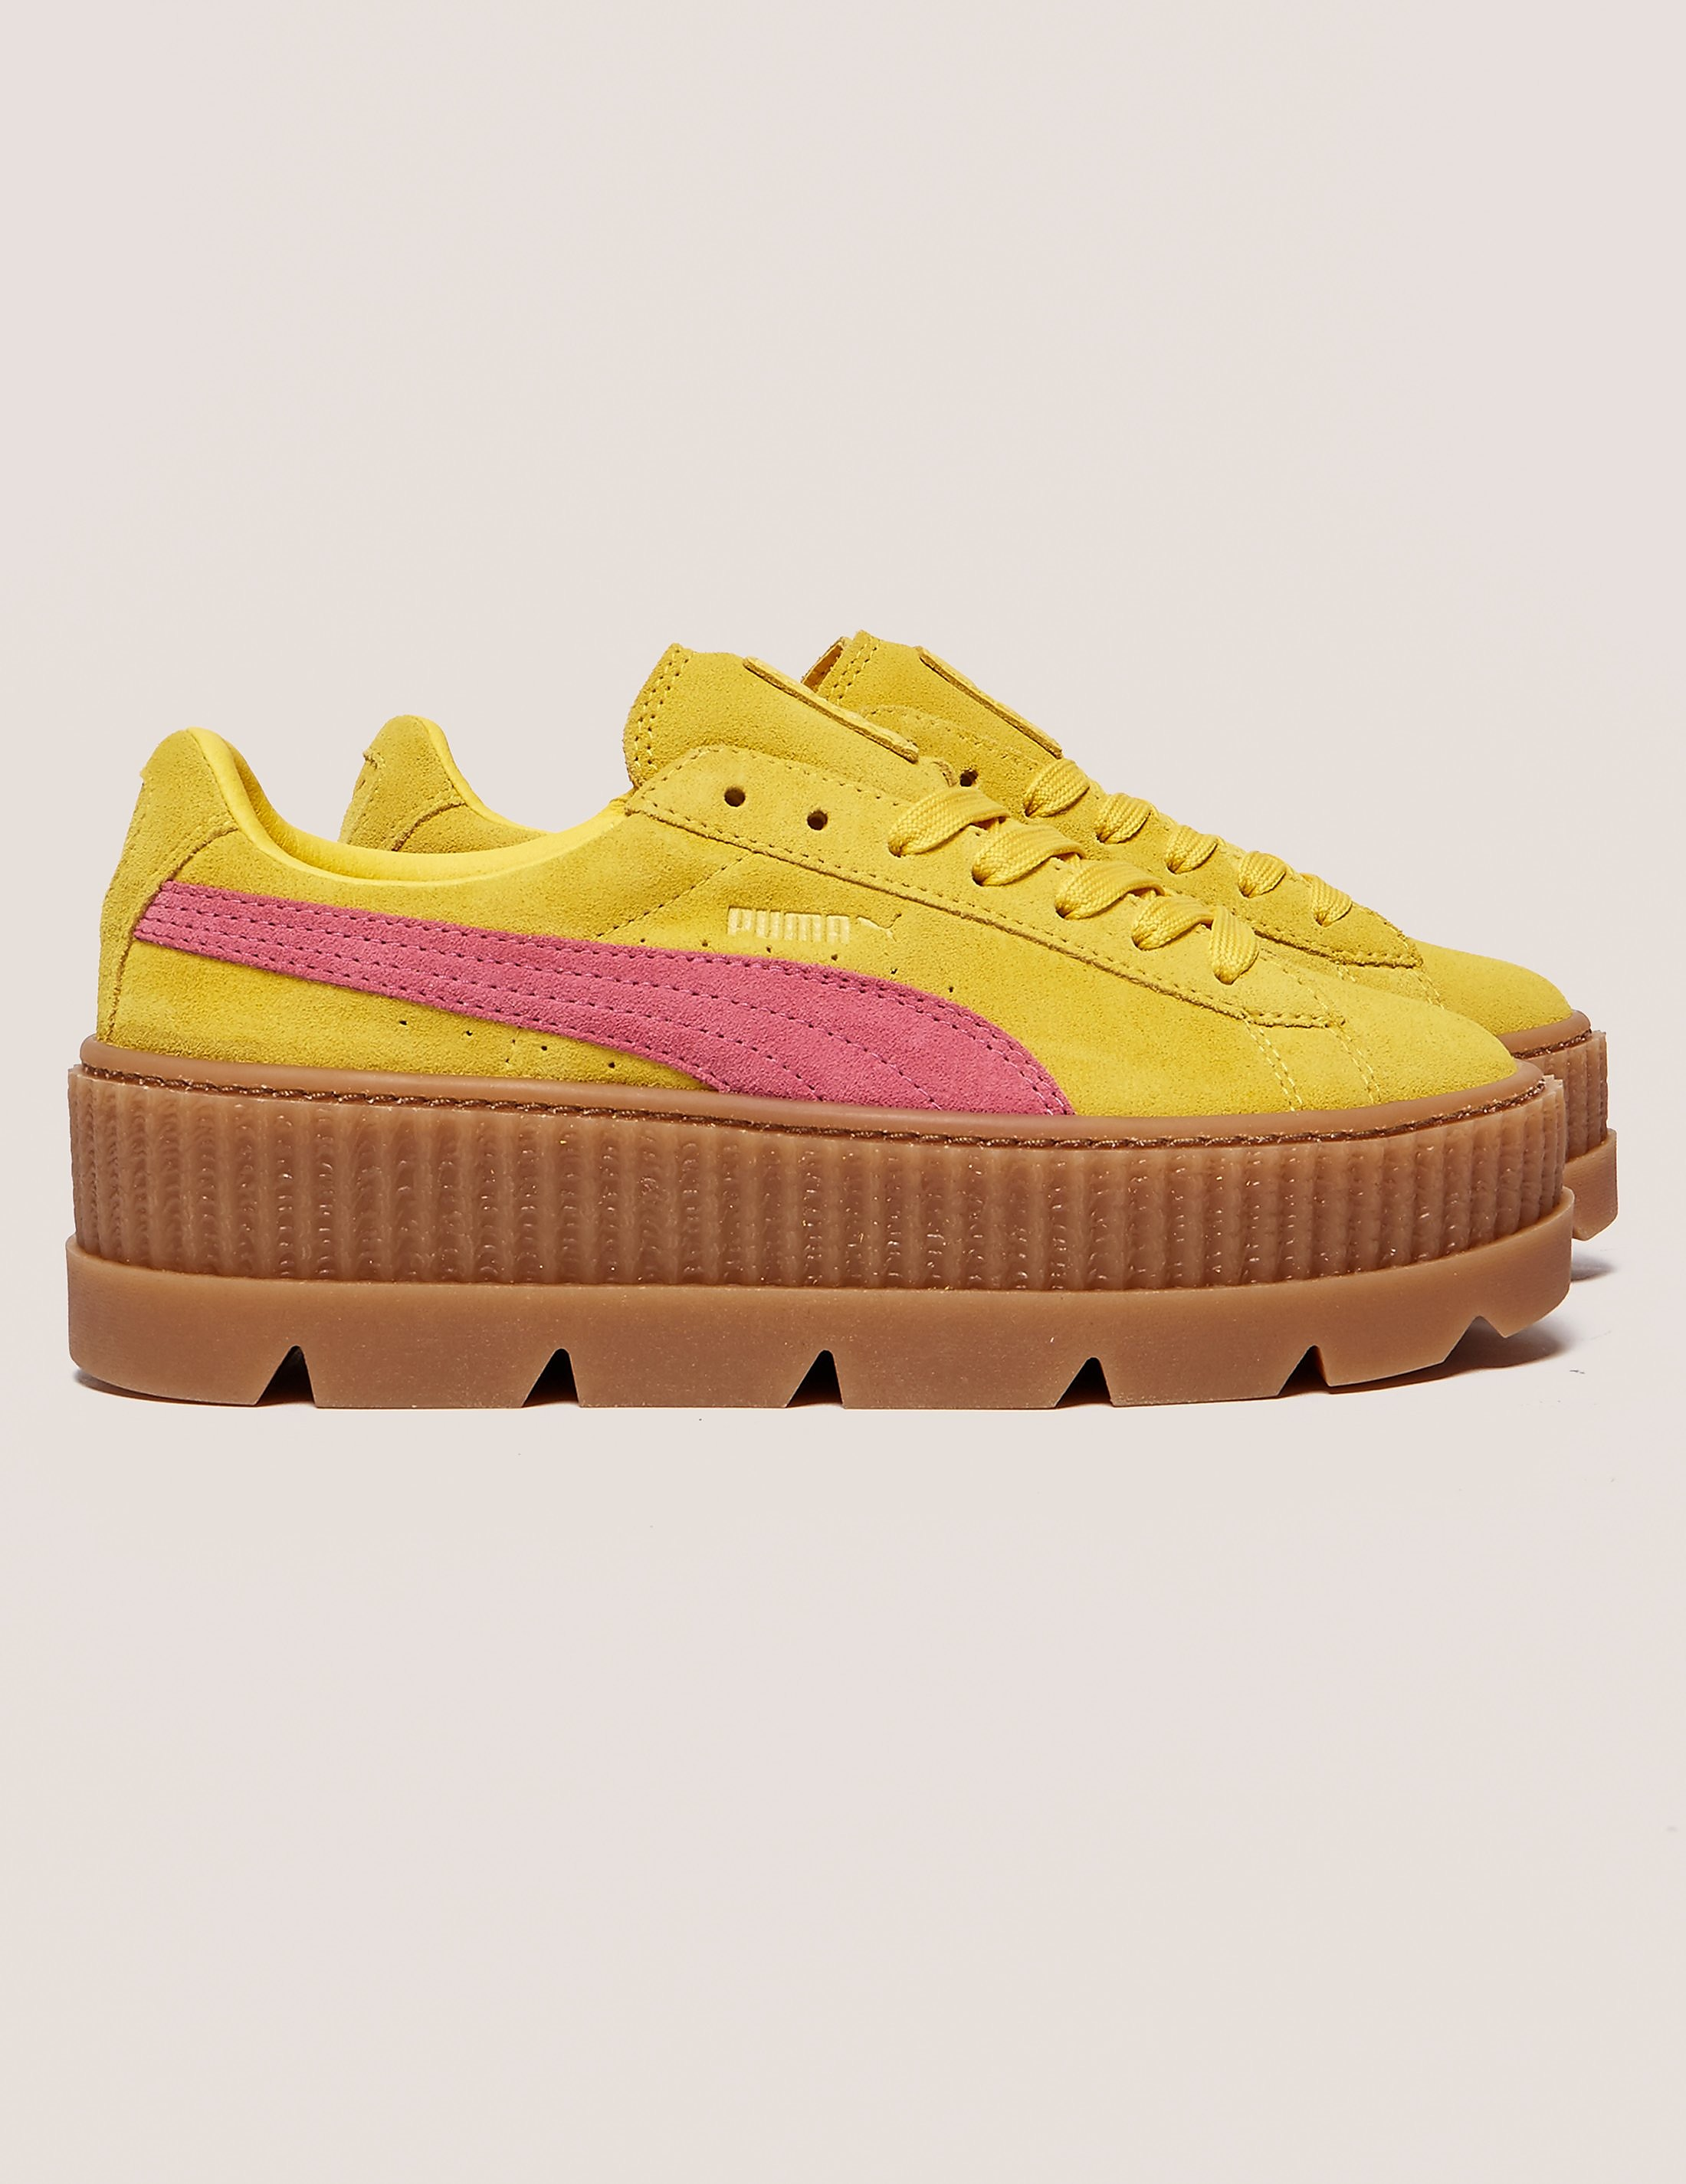 PUMA X Fenty Cleated Creeper Women's